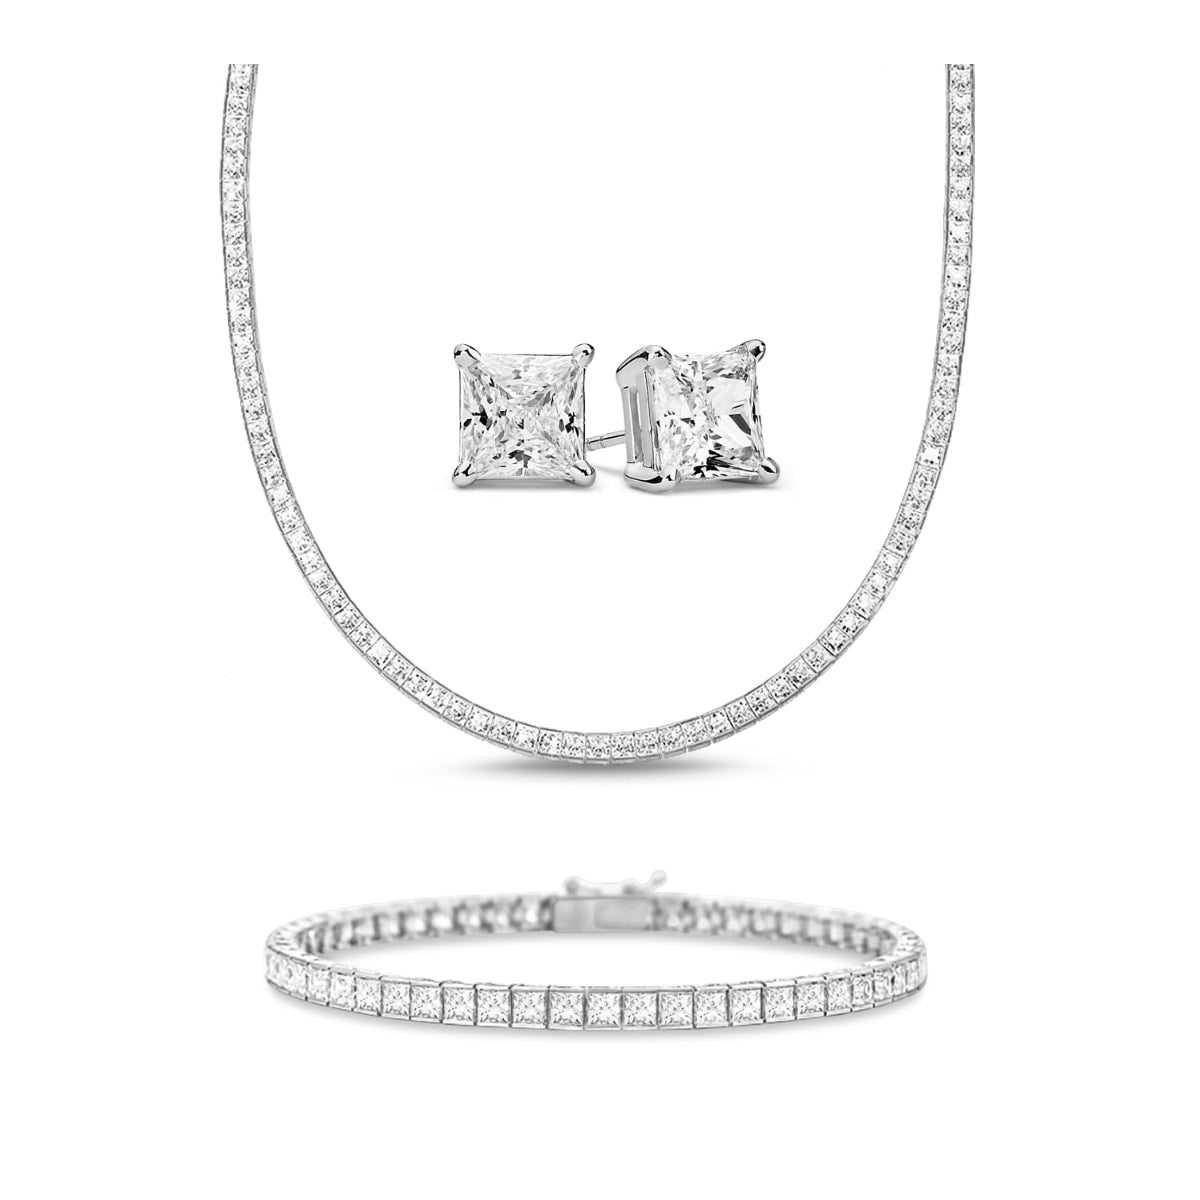 [PROMO SET] Hariette Princess Necklace Bracelet Earrings Diamond Set